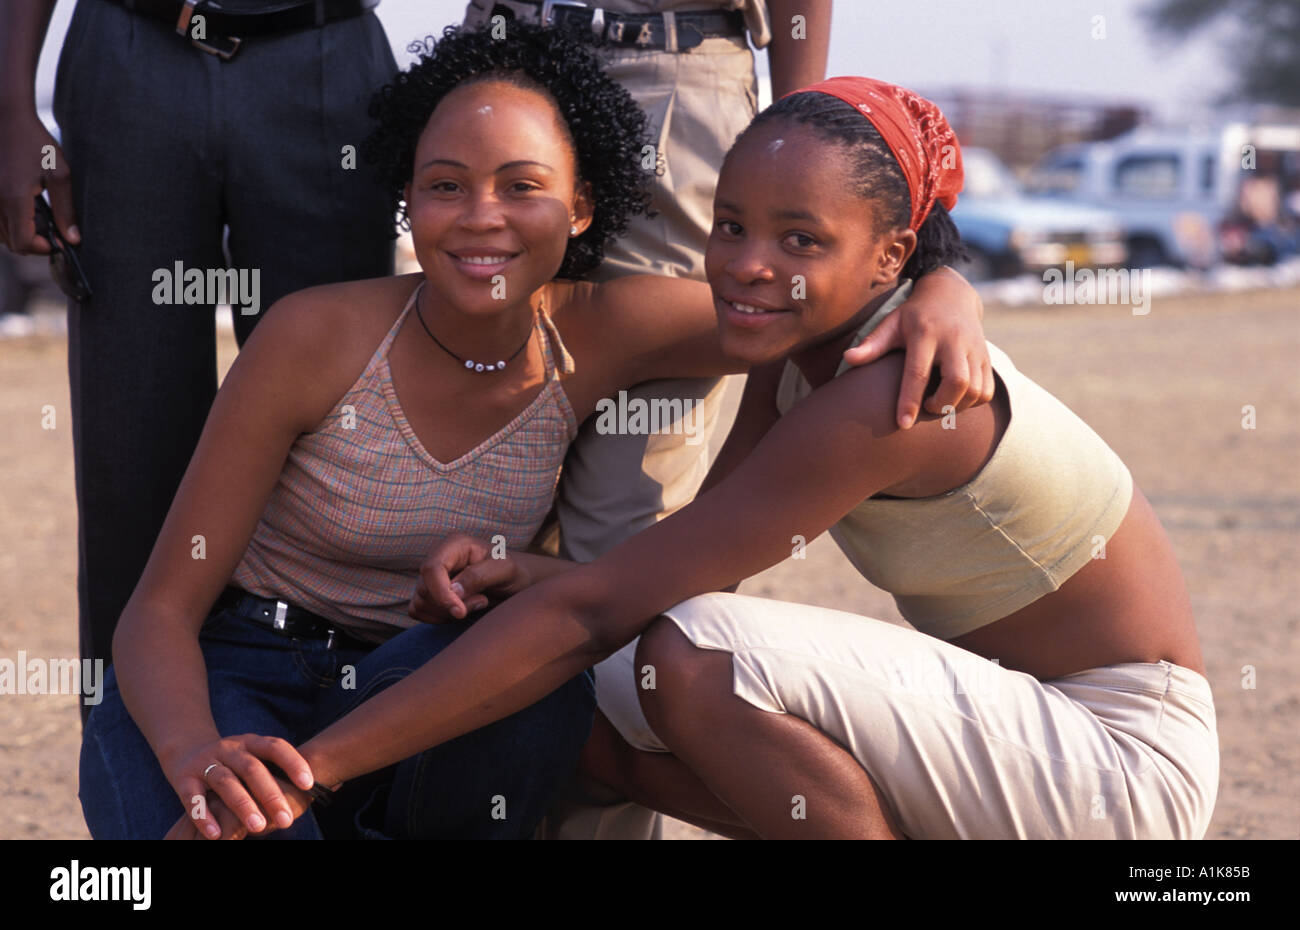 Friendly local girls pose for a photo People flock to the MaHerero Day festival August Okahandja Namibia - Stock Image